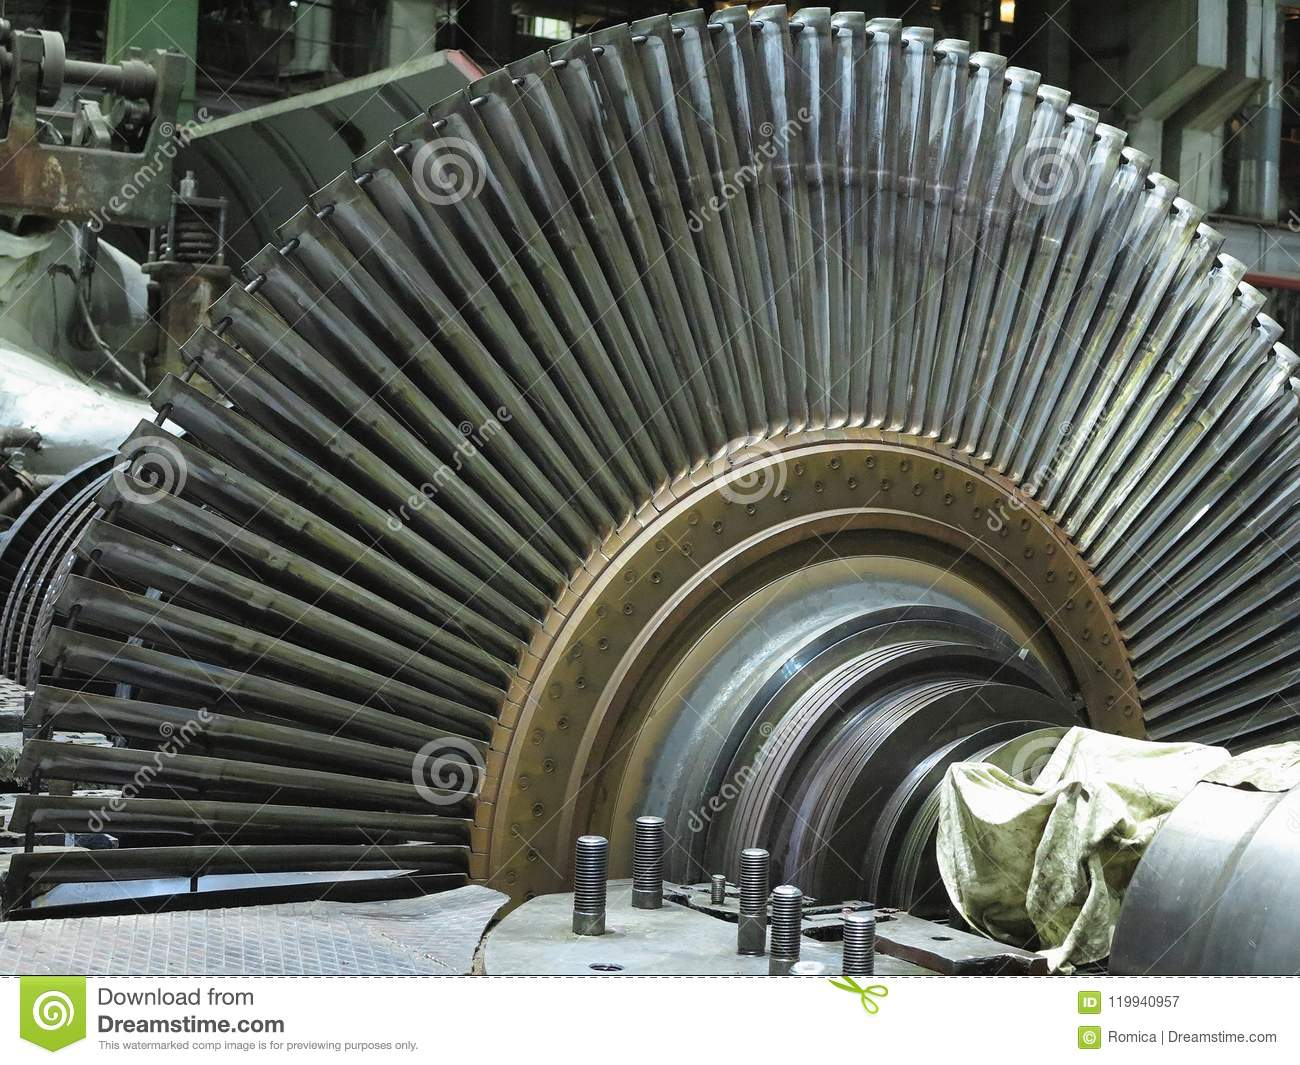 Disassembled Steam Turbine In The Process Of Generator